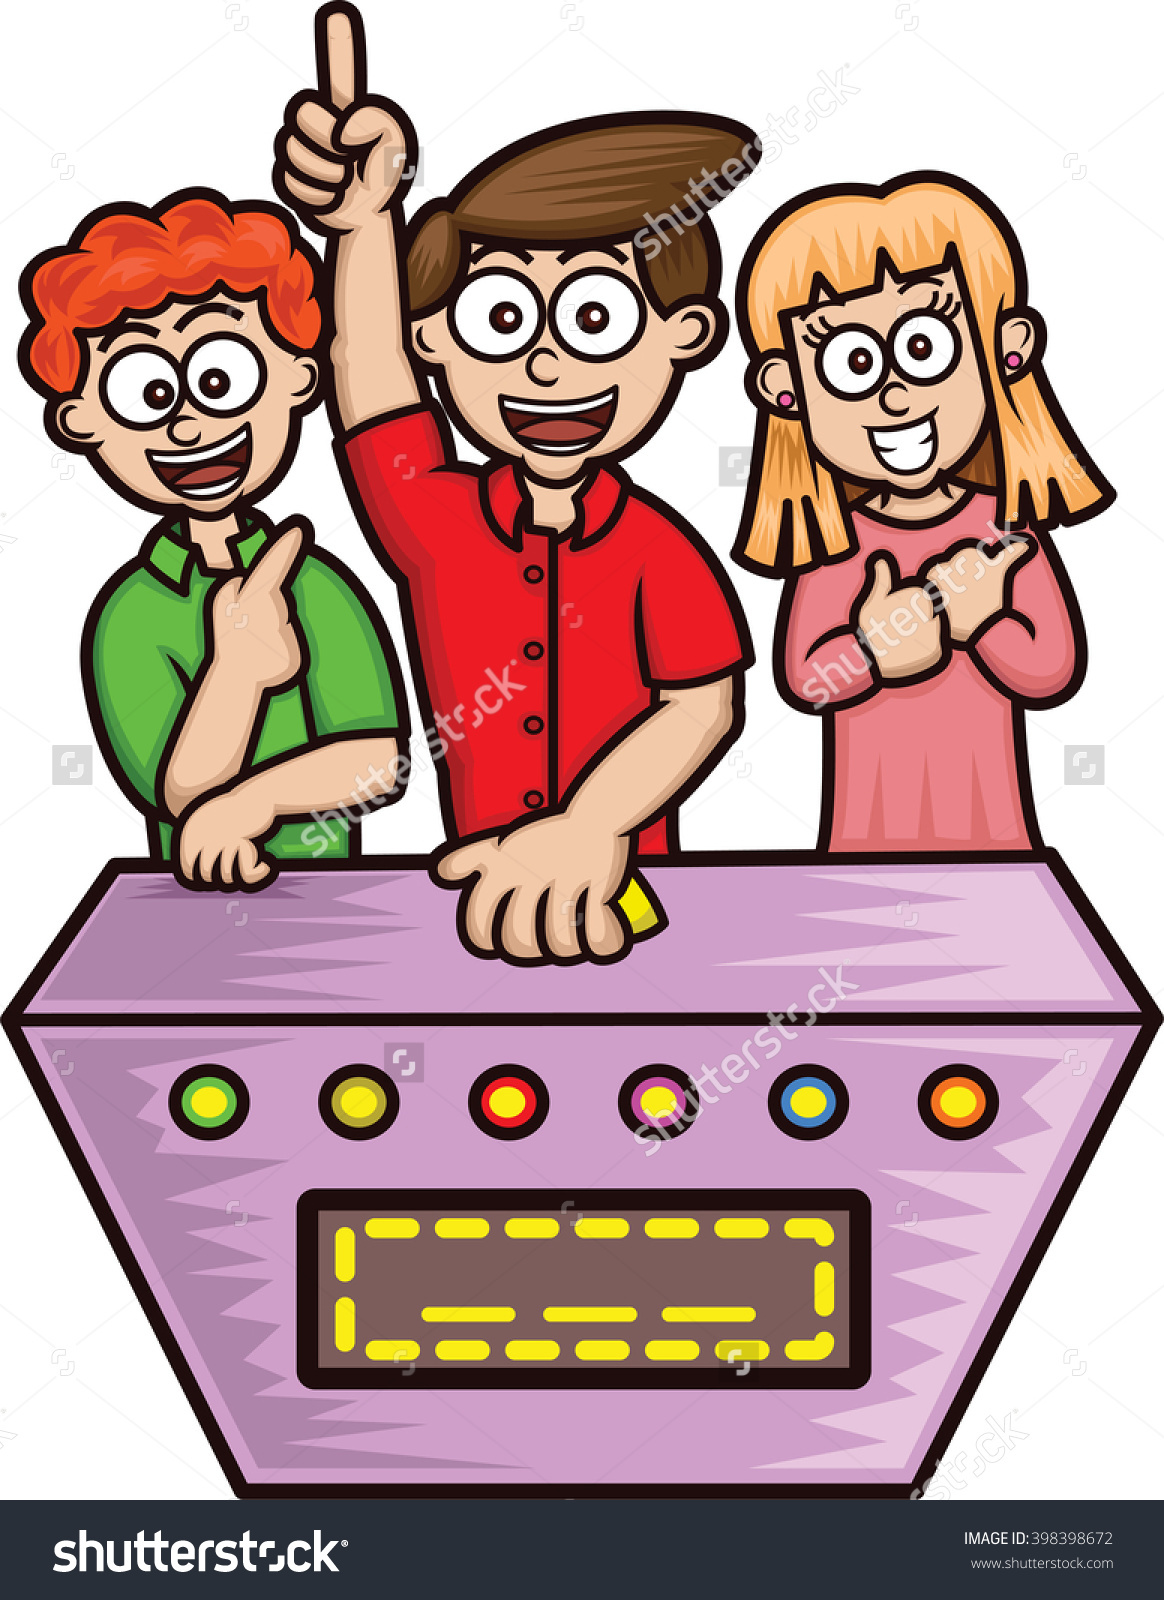 Game Show Clipart #1. Save To A Lightbox-Game Show Clipart #1. Save to a lightbox-5